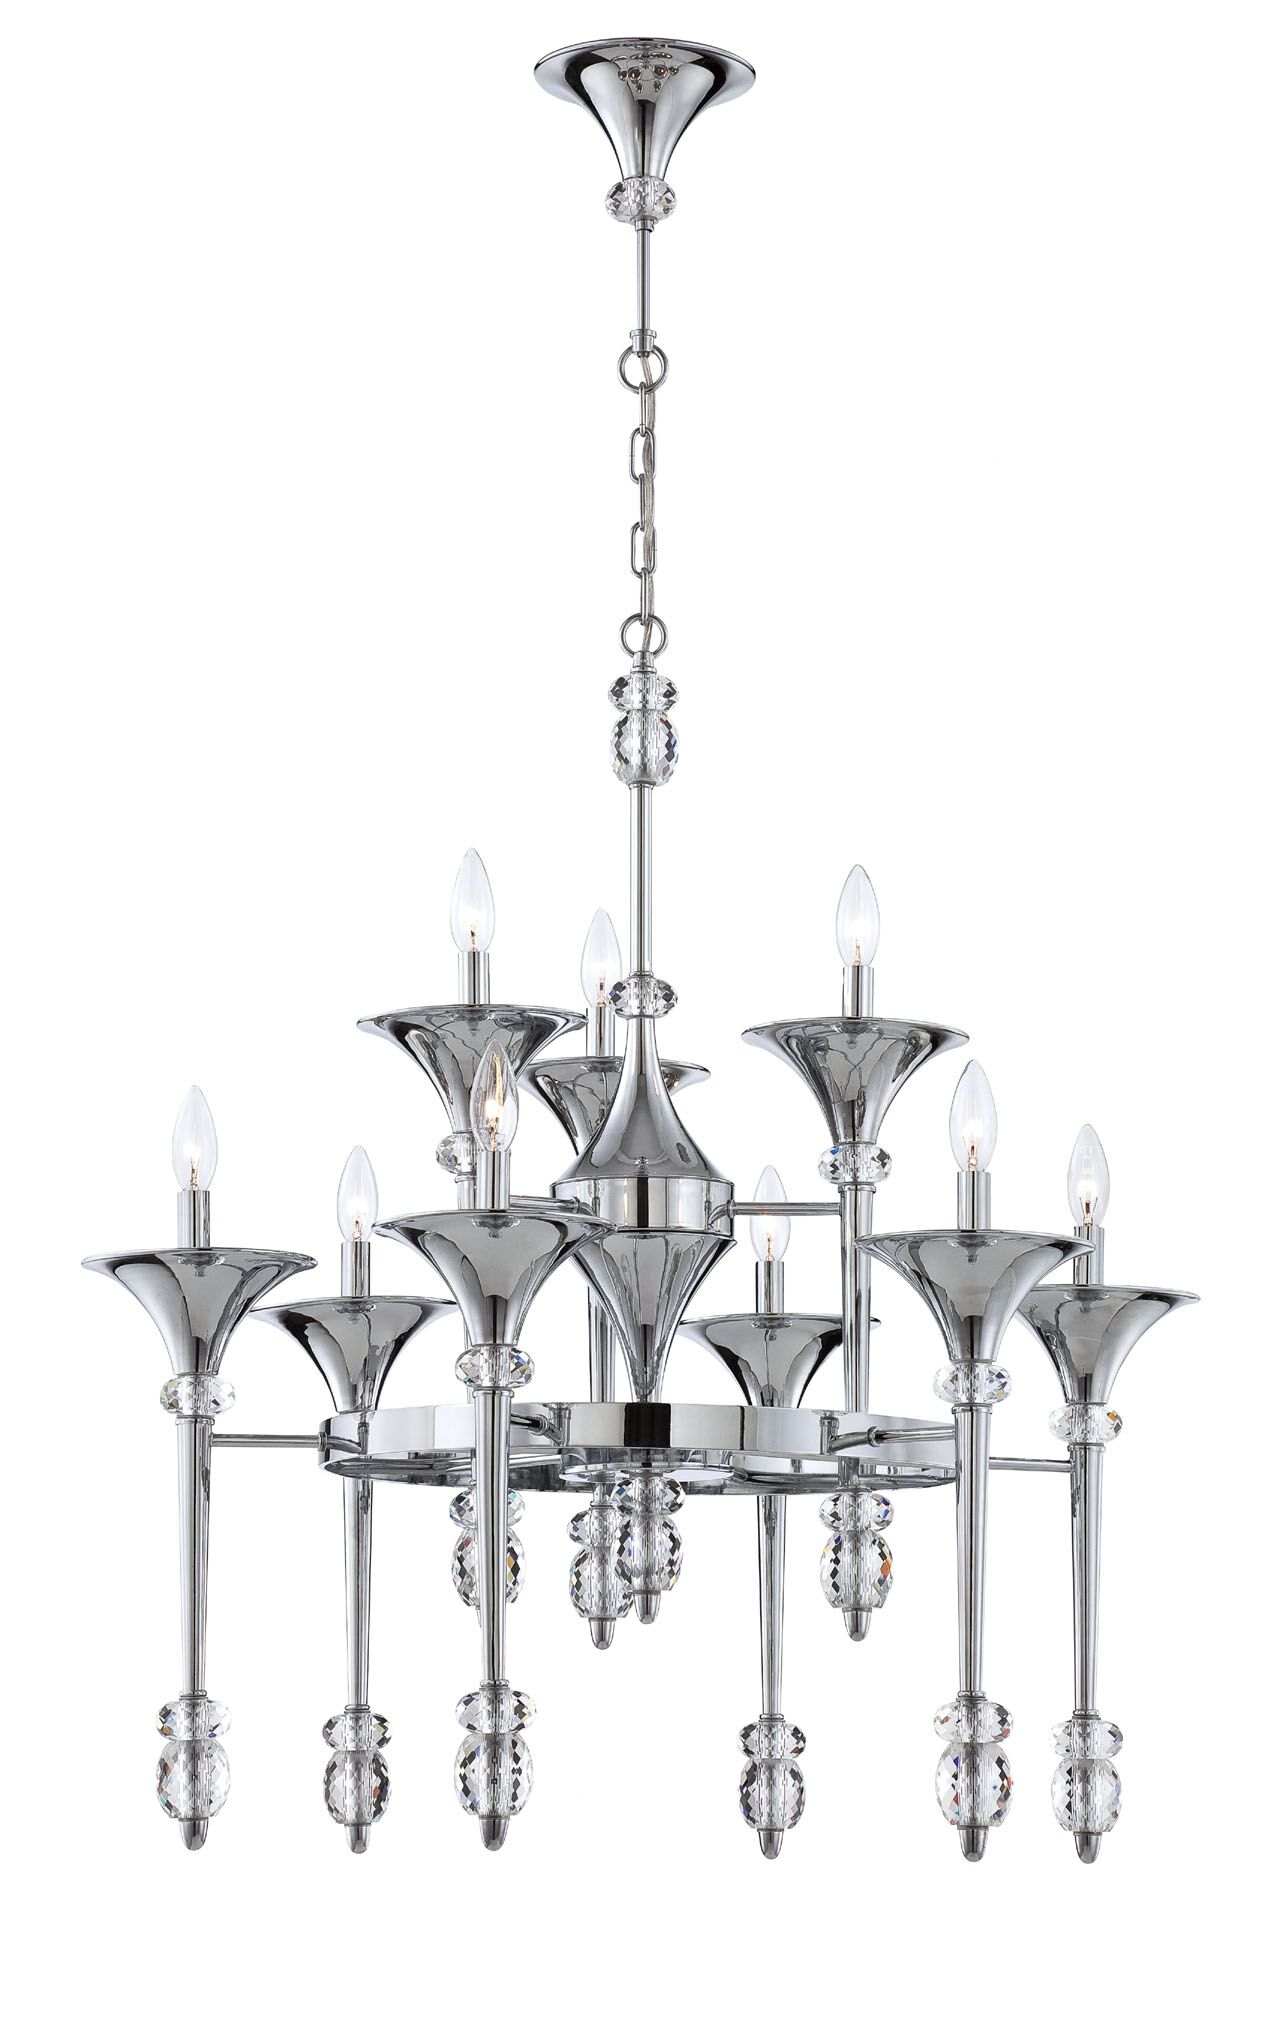 Cannello 9-Light Chandelier